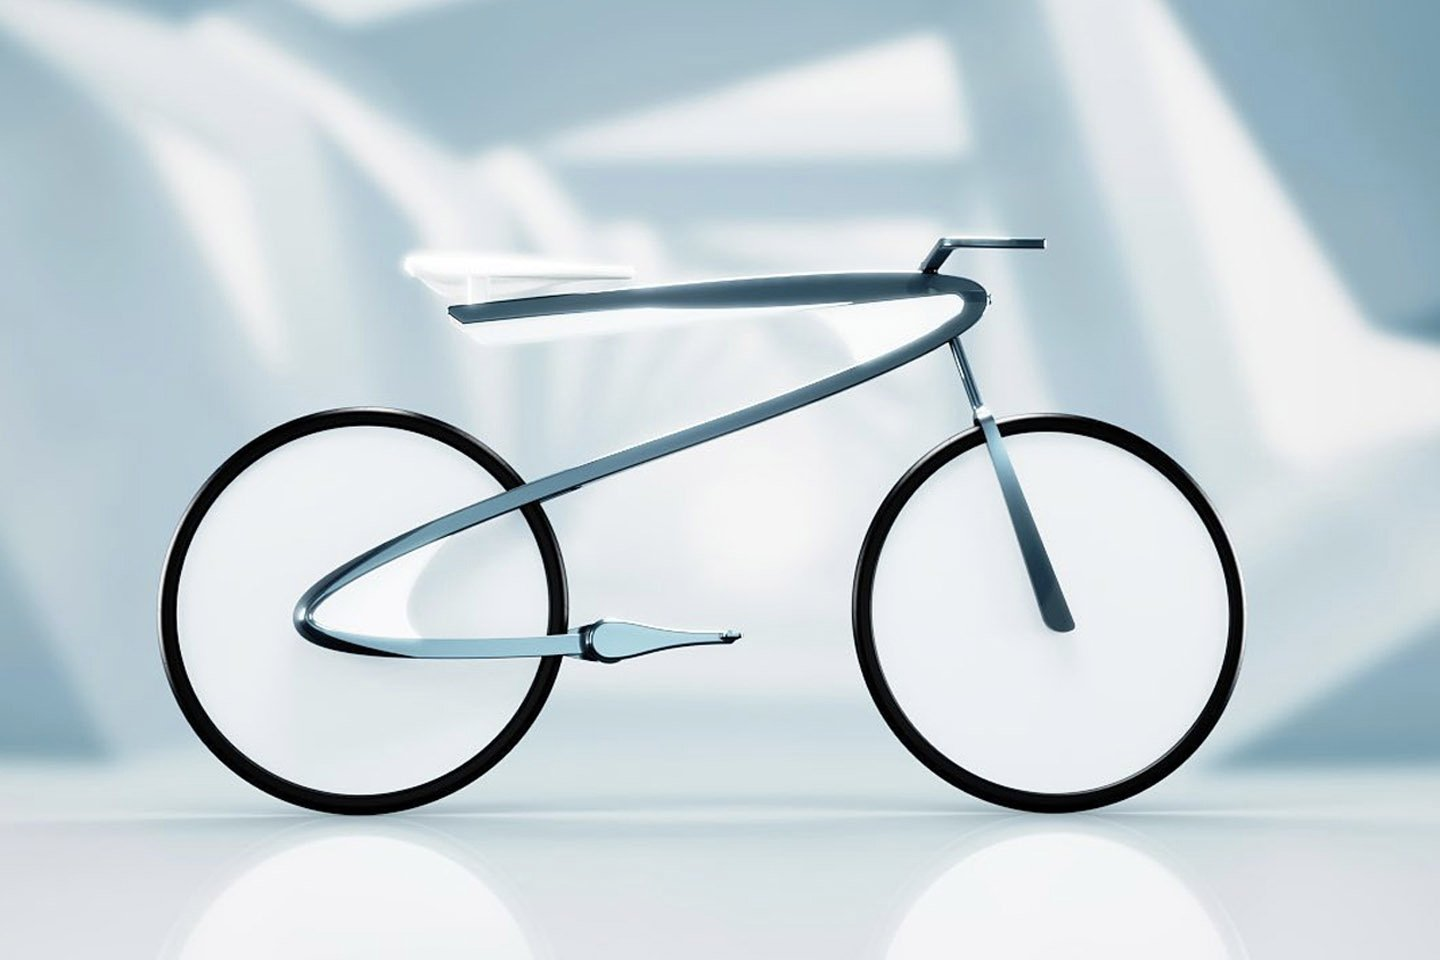 Sleek & modern e-bikes designed to commute in eco-friendly style + achieve your fitness goals!